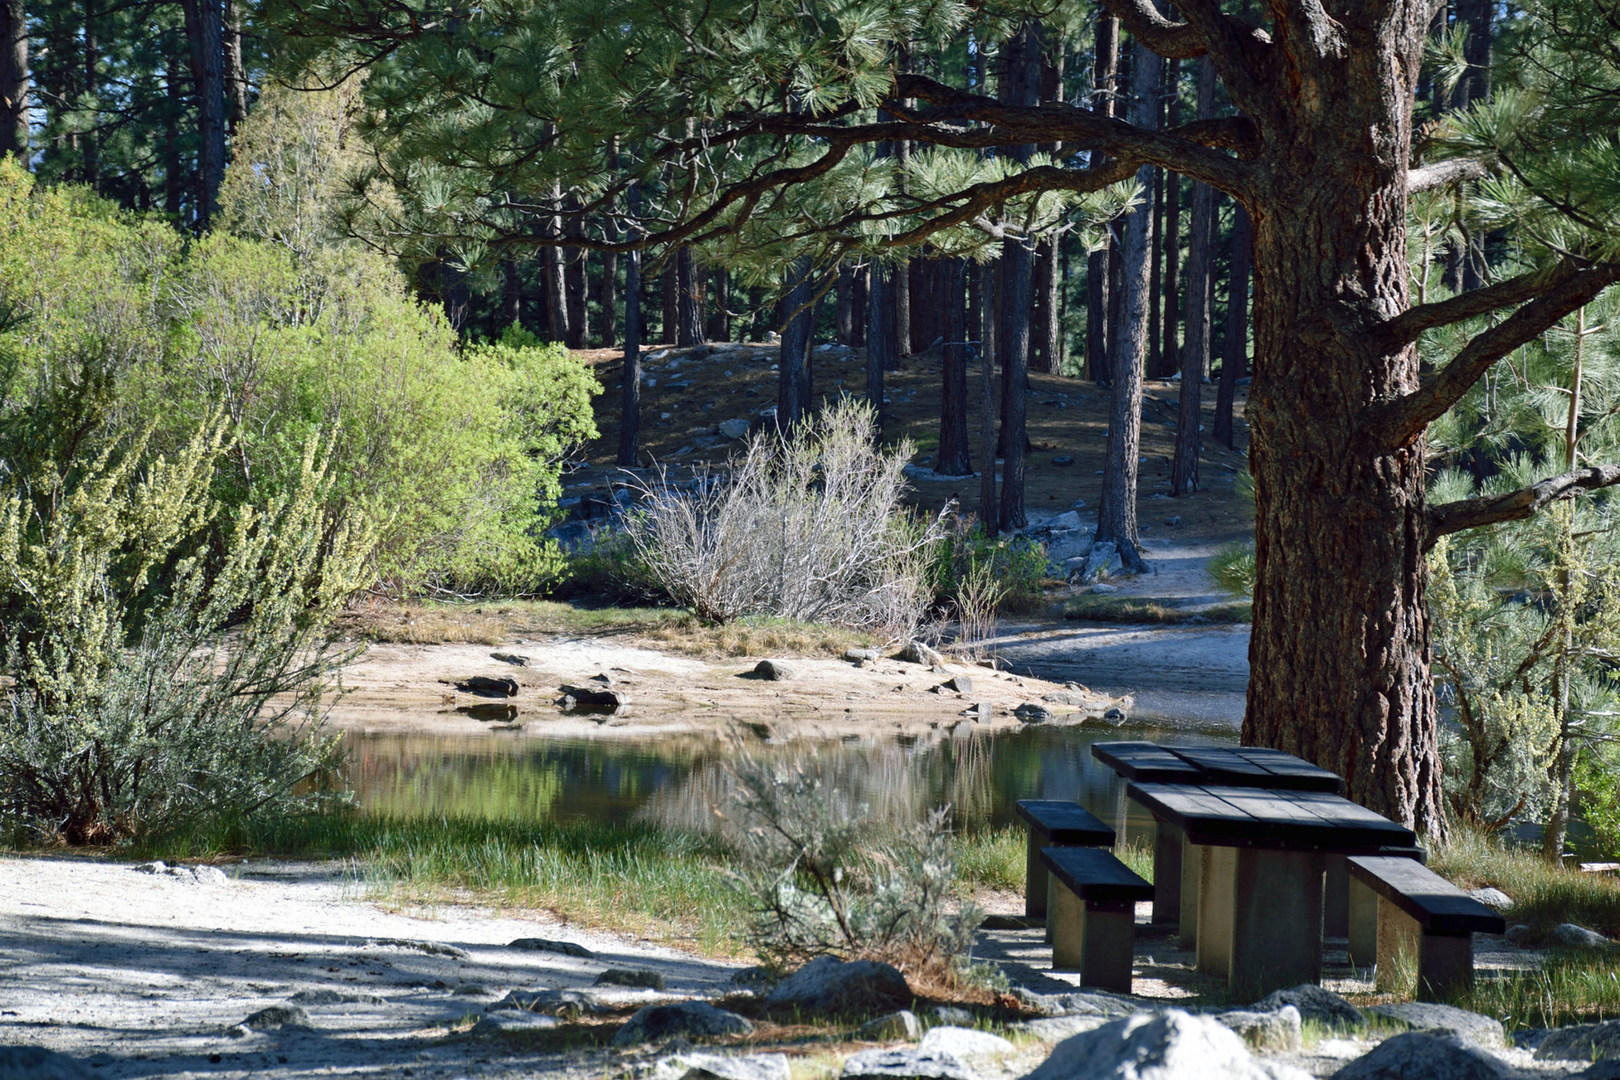 99 Store Near Me >> Davis Creek Campground | Outdoor Project